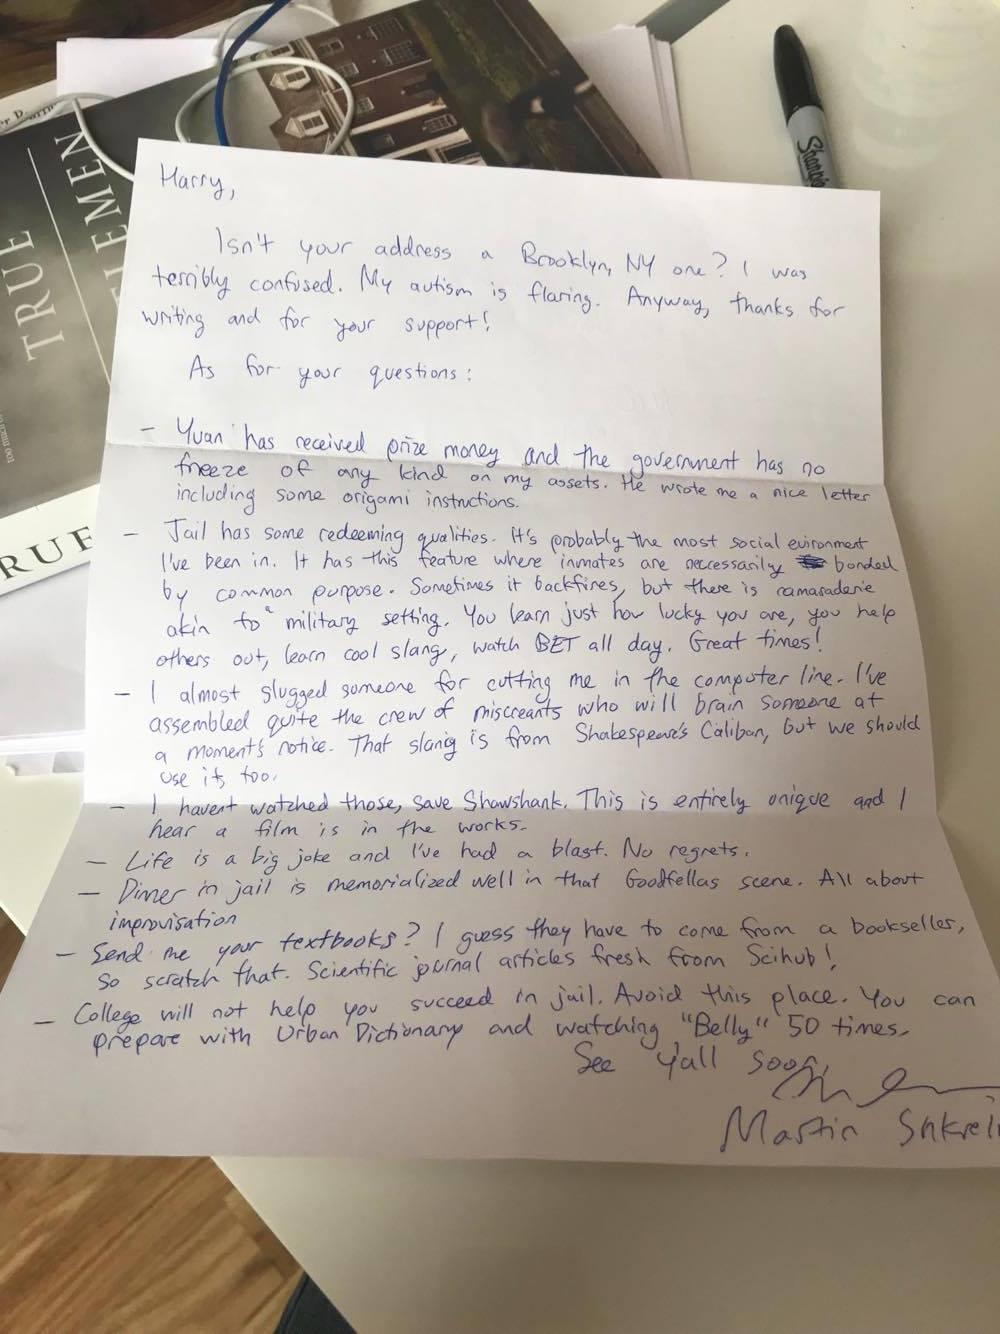 Martin Shkreli sends a letter from jail to say Avoid this place